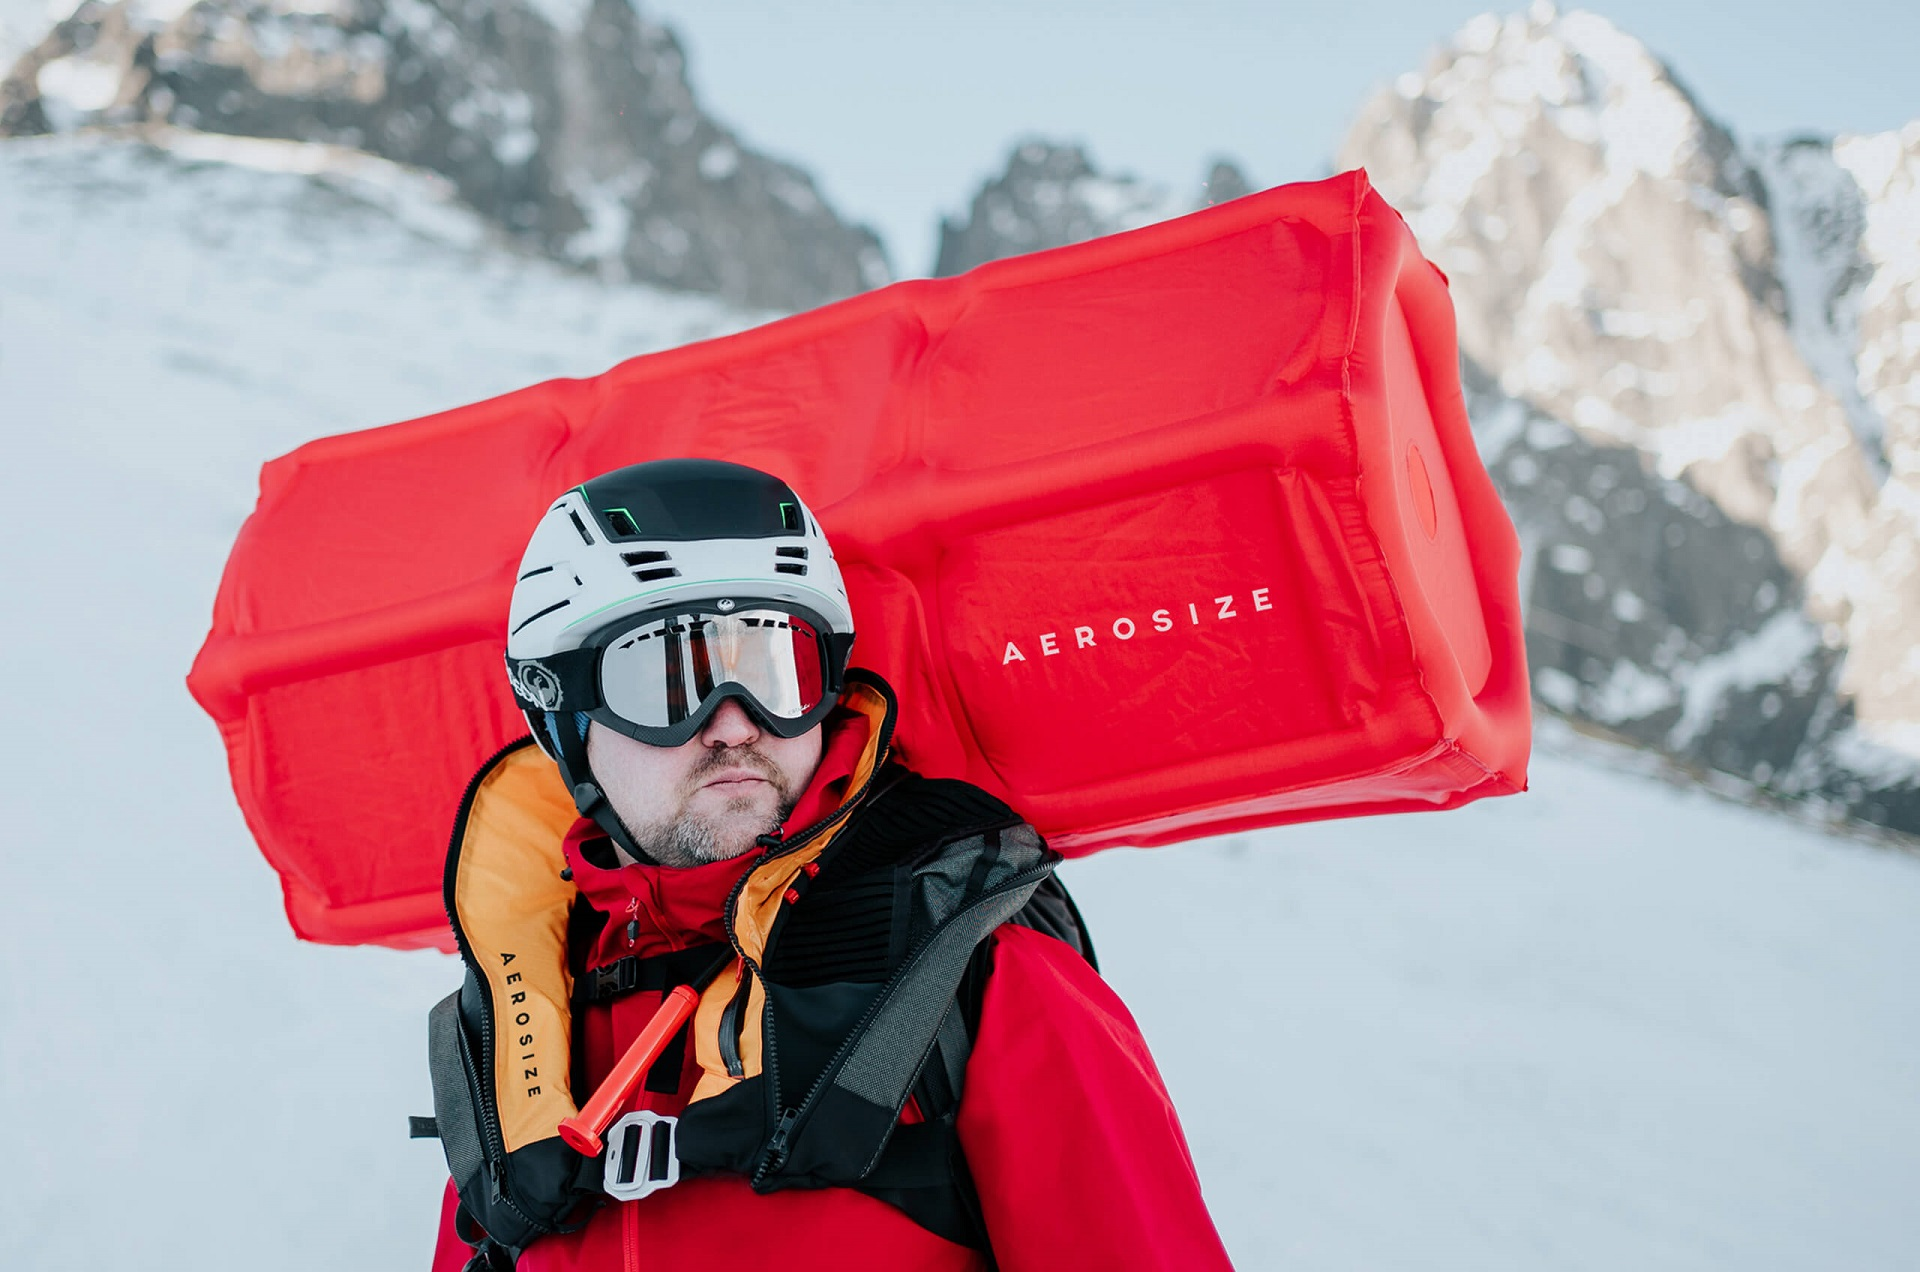 Team member Maciej Roth wearing the AEROSIZE avalanche airbag, in the mountains in winter